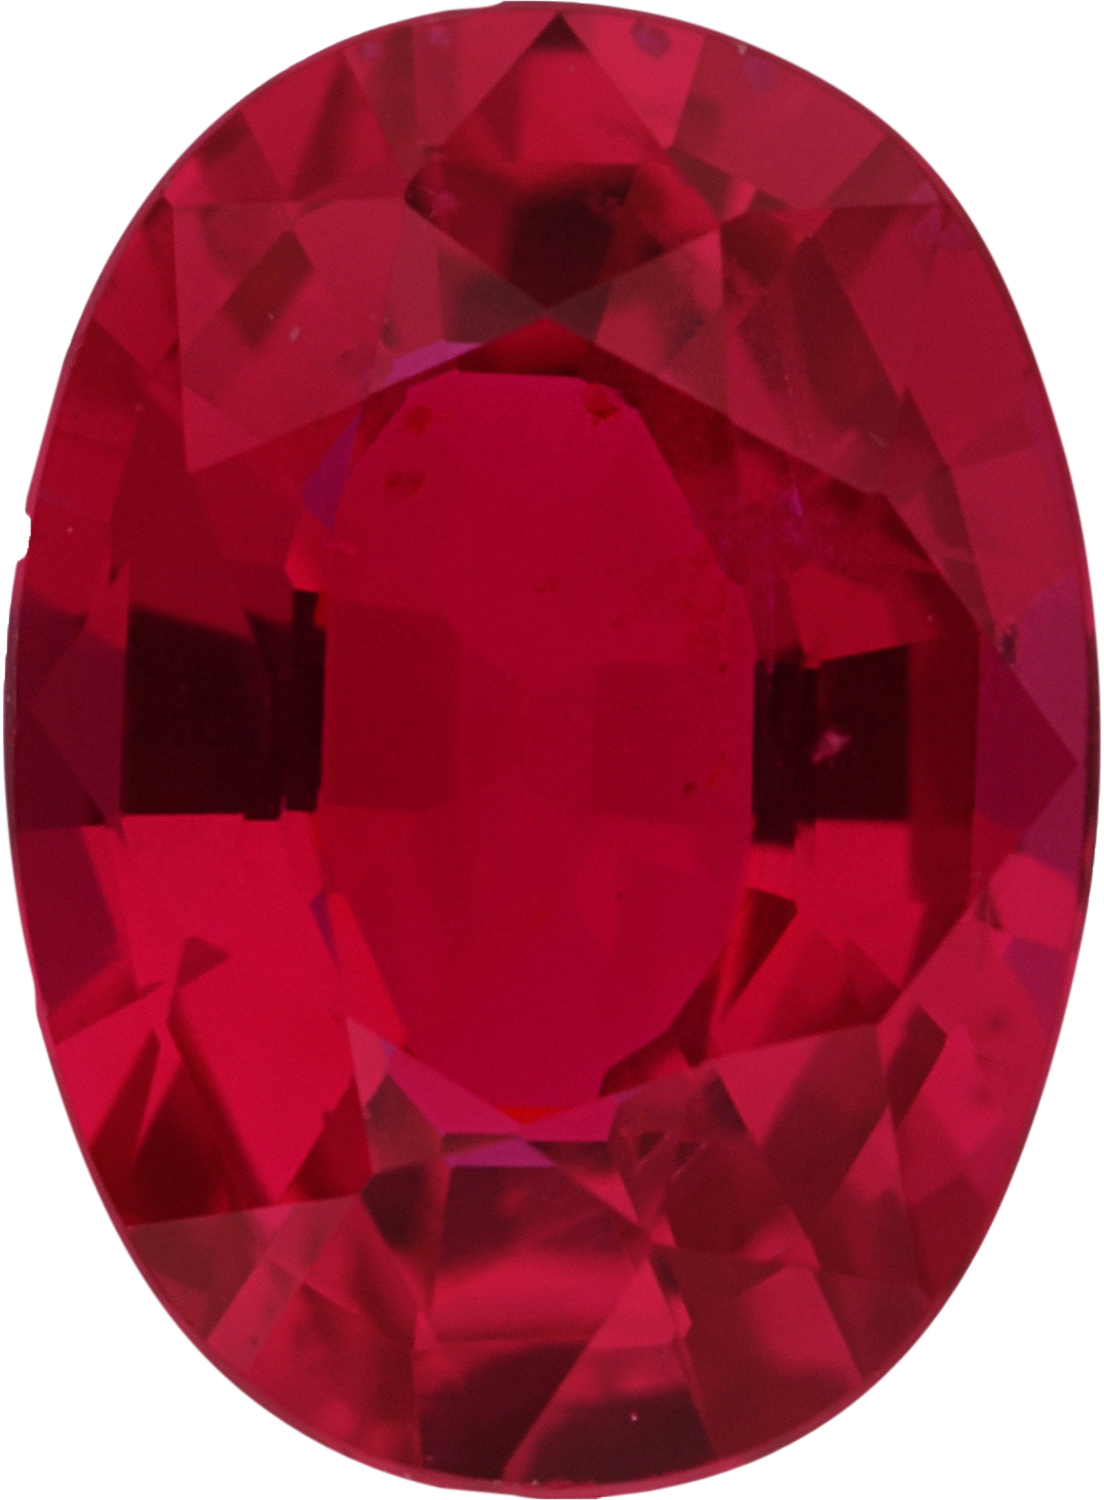 Excellent No Heat Loose Ruby Gem in Oval Cut, Deep  Red Color, 7.49 x 5.50 mm, 1.15 carats